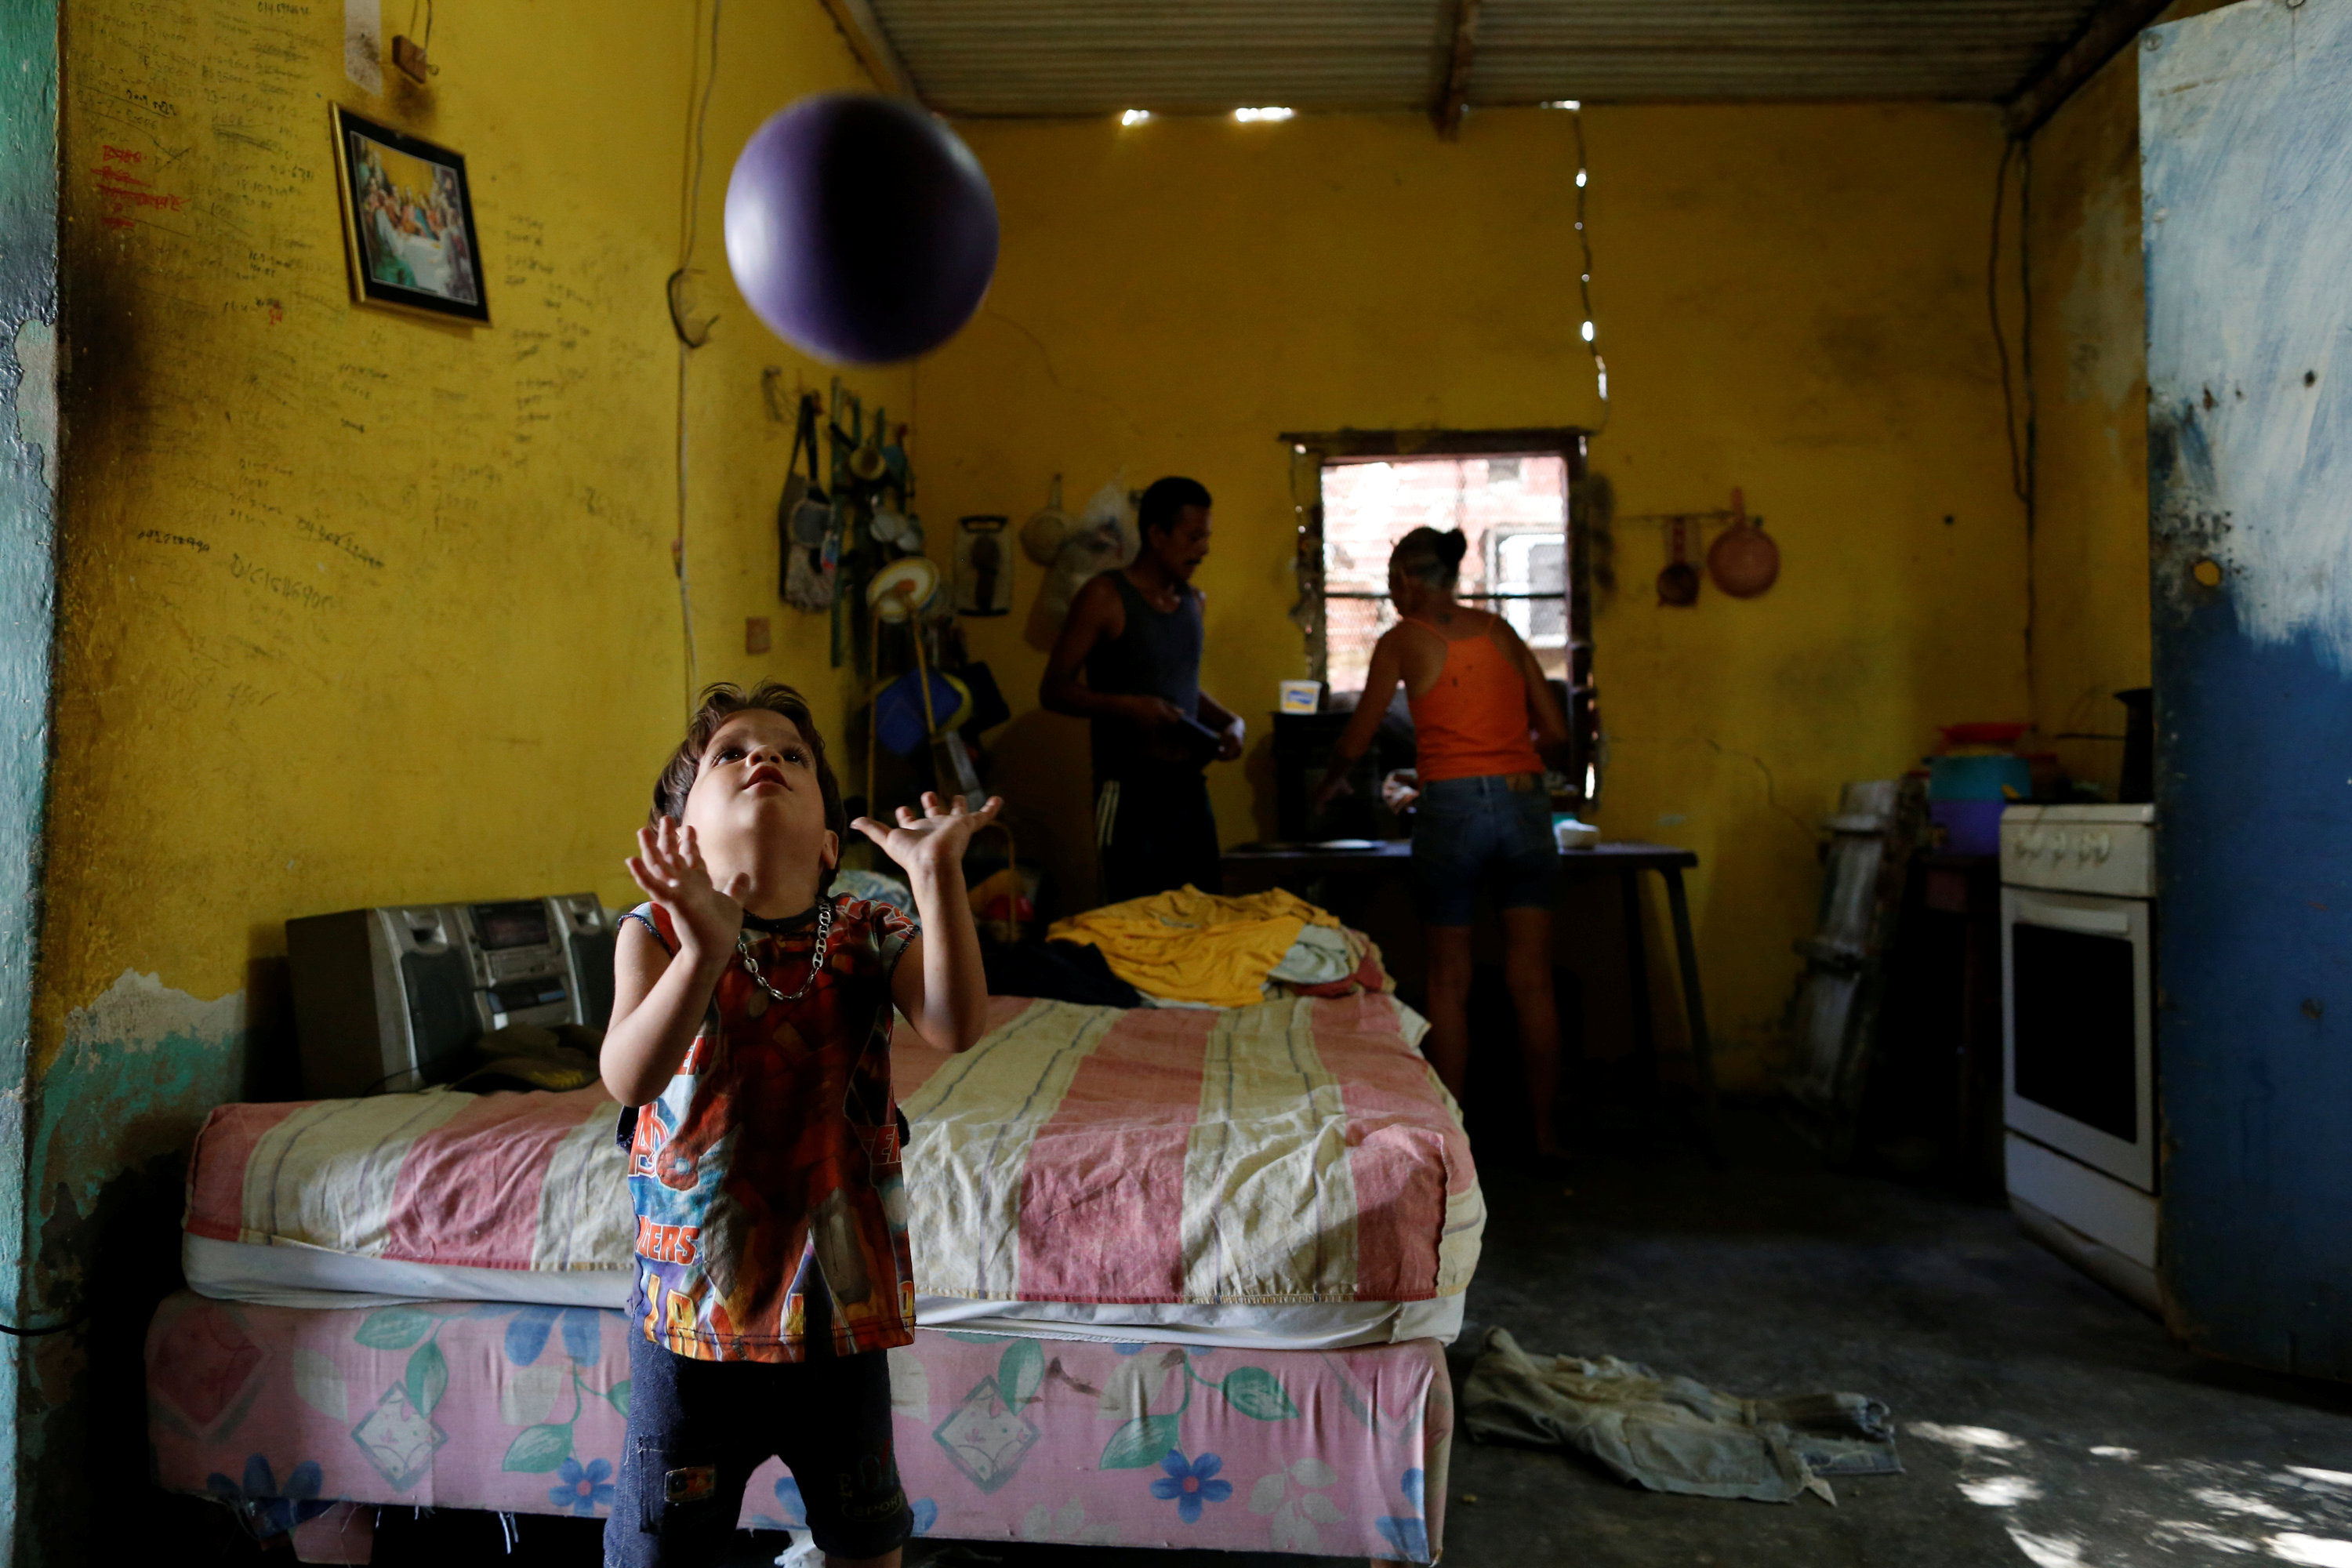 Emmanuel Cuauro, 4, plays with a ball next to his parents Zulay Pulgar (R), 43, and Maikel Cuauro, 30, in their house in Punto Fijo, Venezuela